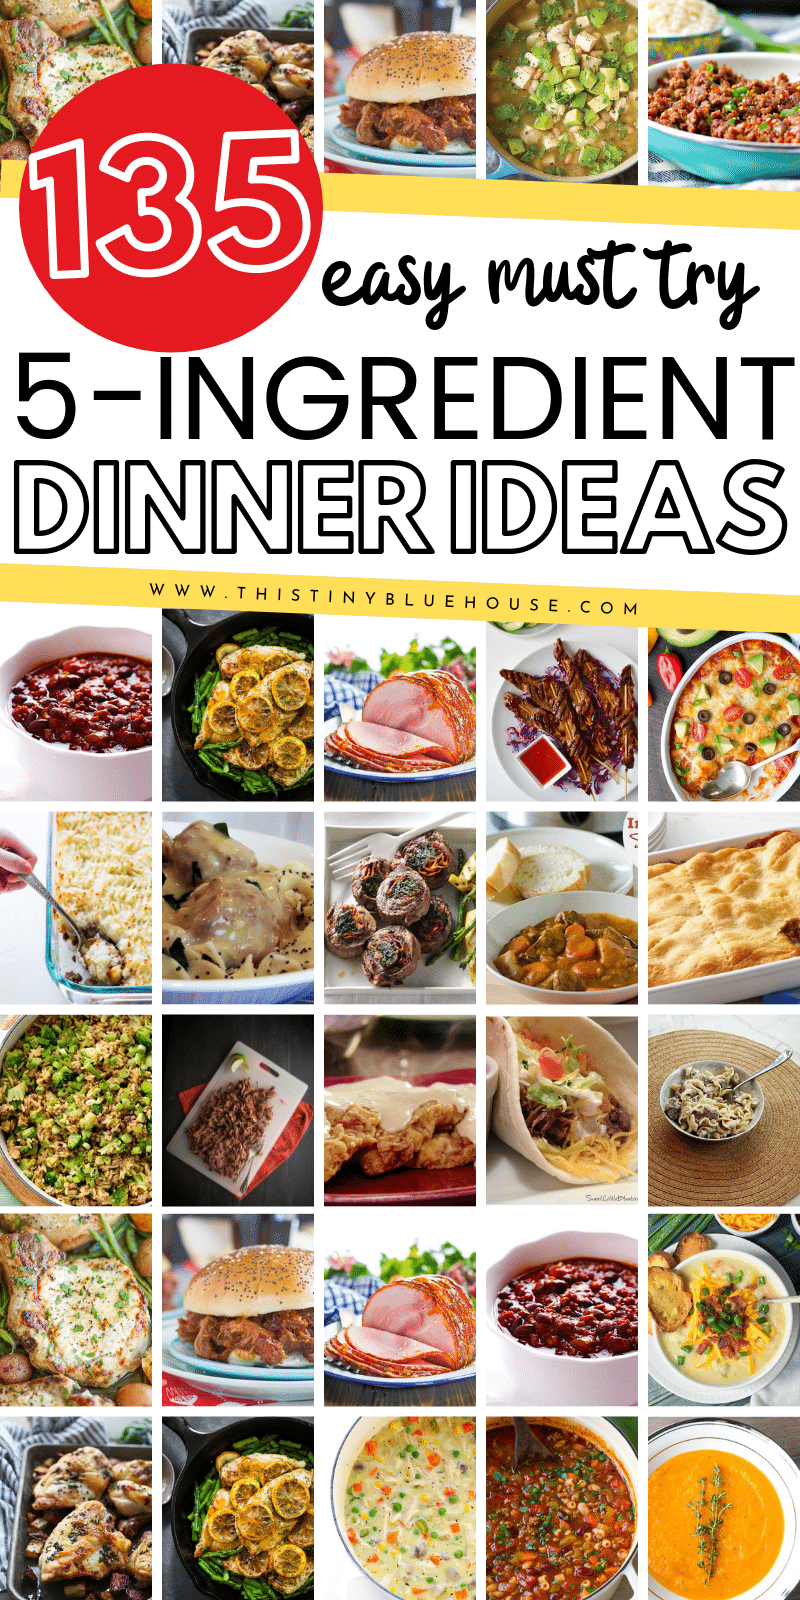 135 delicious Quick & Easy 5-Ingredient Suppers split into chicken, beef, pork, fish & meatless categories. Simplify your meal plan with these easy meals. #easydinners #simplesupperrecipes #easyweeknightsuppers #5ingredientdinners #5ingredientsuppers #easyschoolnightdinners #easilyfamilydinnerideas